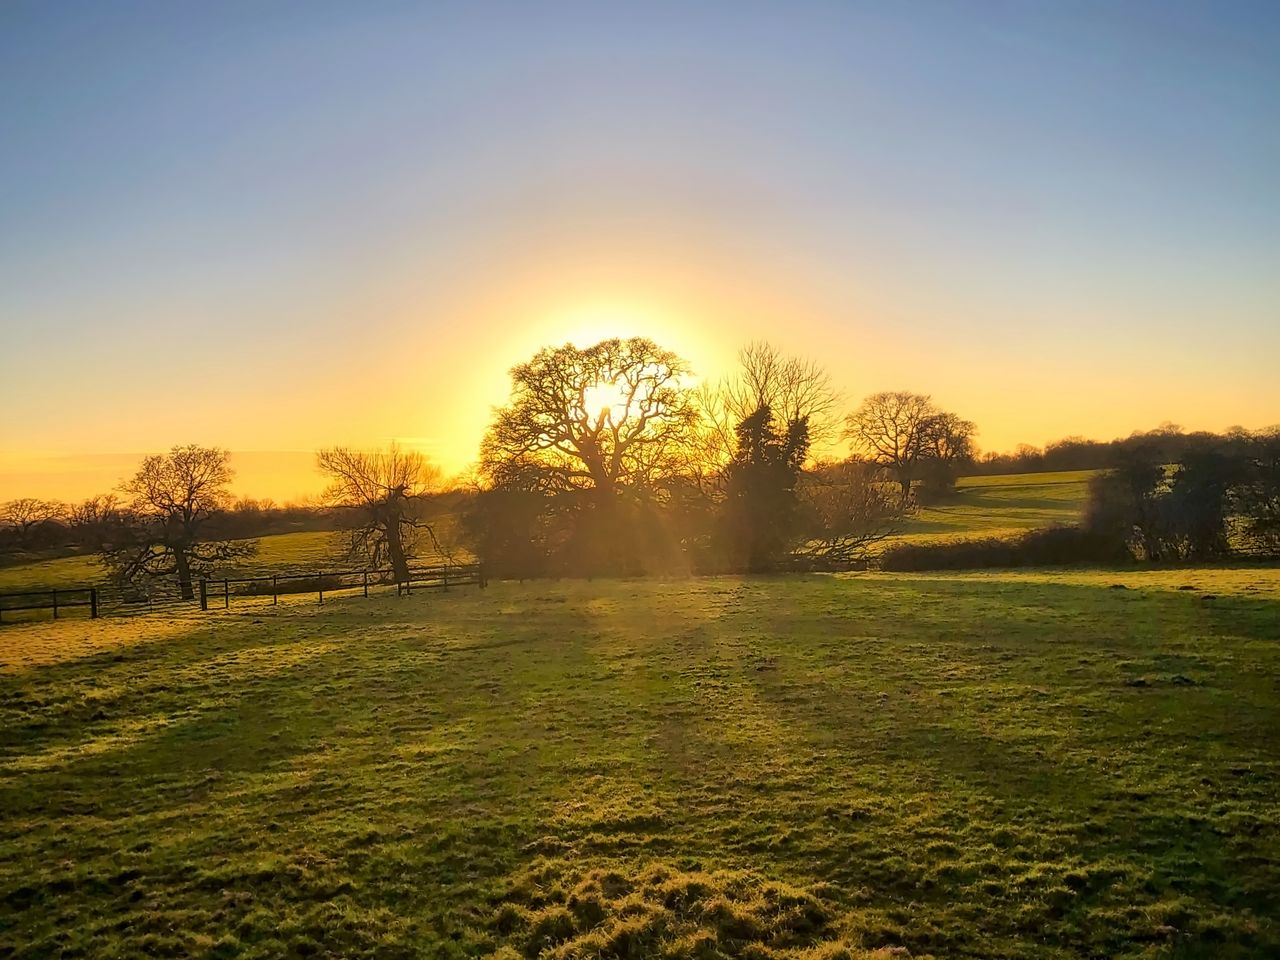 tree, sunset, grass, beauty in nature, nature, sunlight, scenics, tranquil scene, landscape, tranquility, field, no people, sun, idyllic, green color, outdoors, sky, clear sky, day, golf course